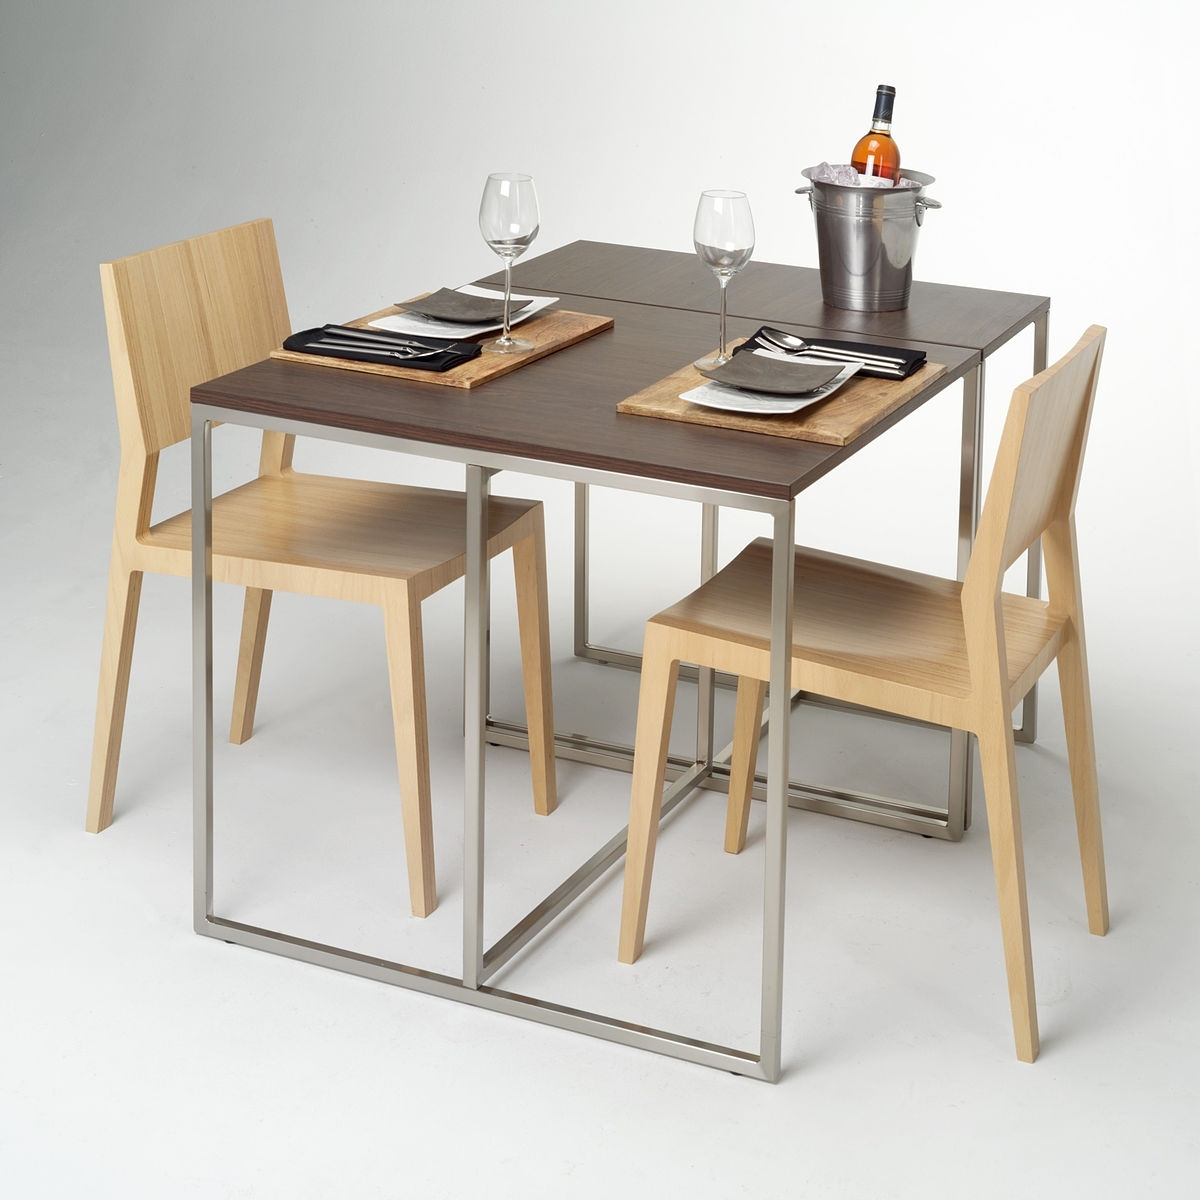 Furniture – Wikipedia With Regard To Most Current Market 7 Piece Dining Sets With Side Chairs (Image 11 of 20)